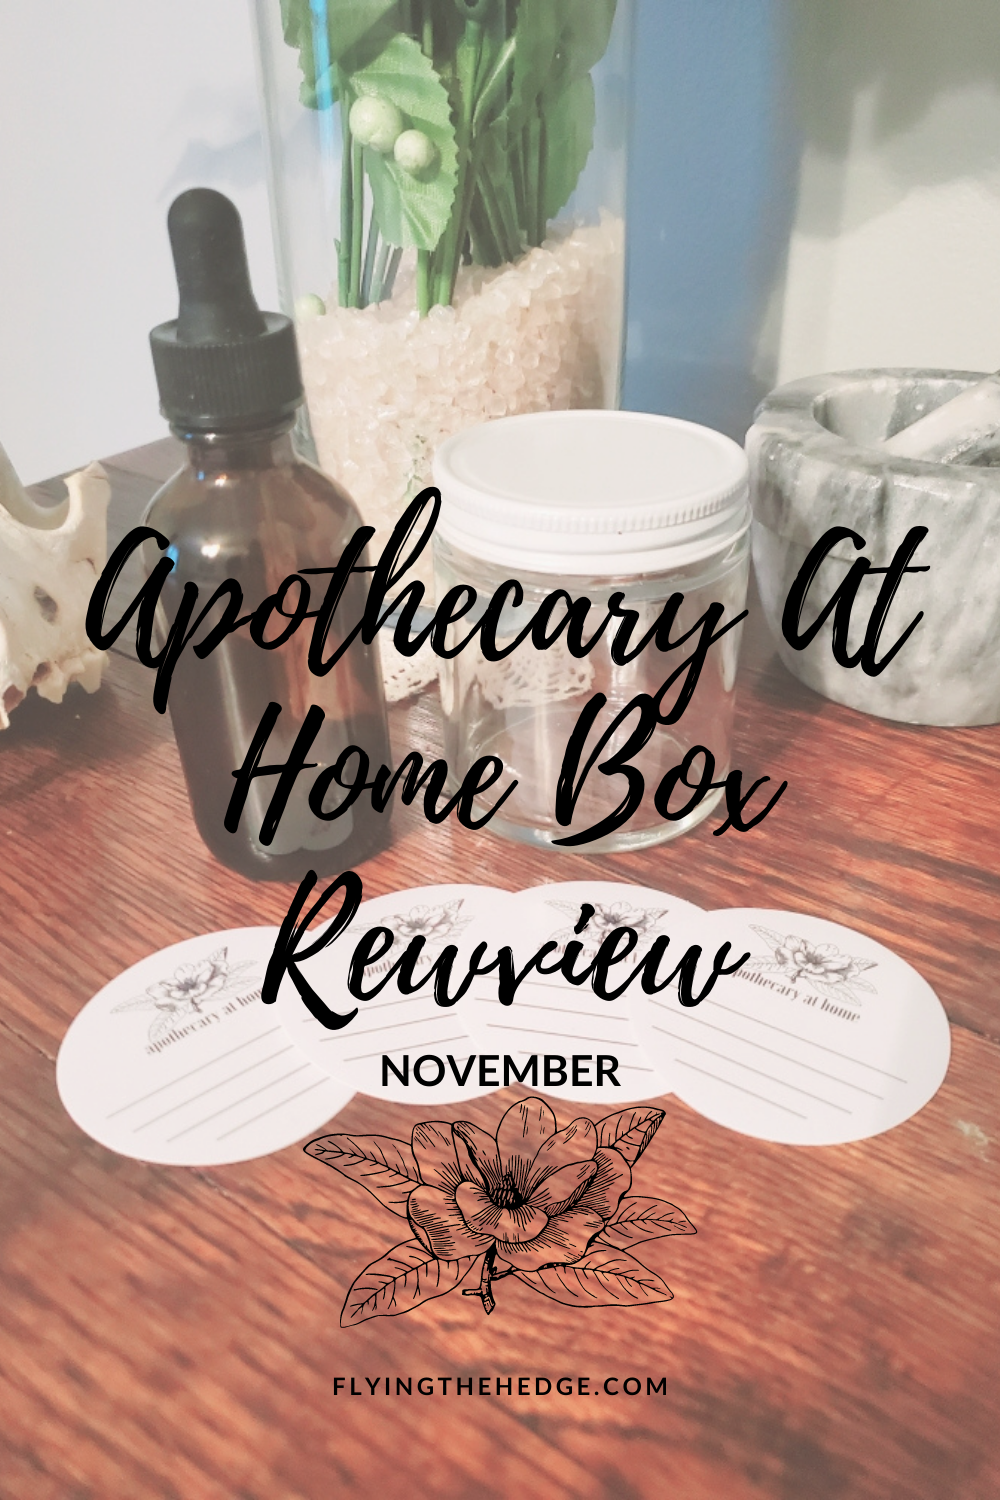 apothecary at home, herbal remedies, subscription box, witchcraft, witchy, herb, herbal, herabrium, green witch, green witchcraft, hedgewitch